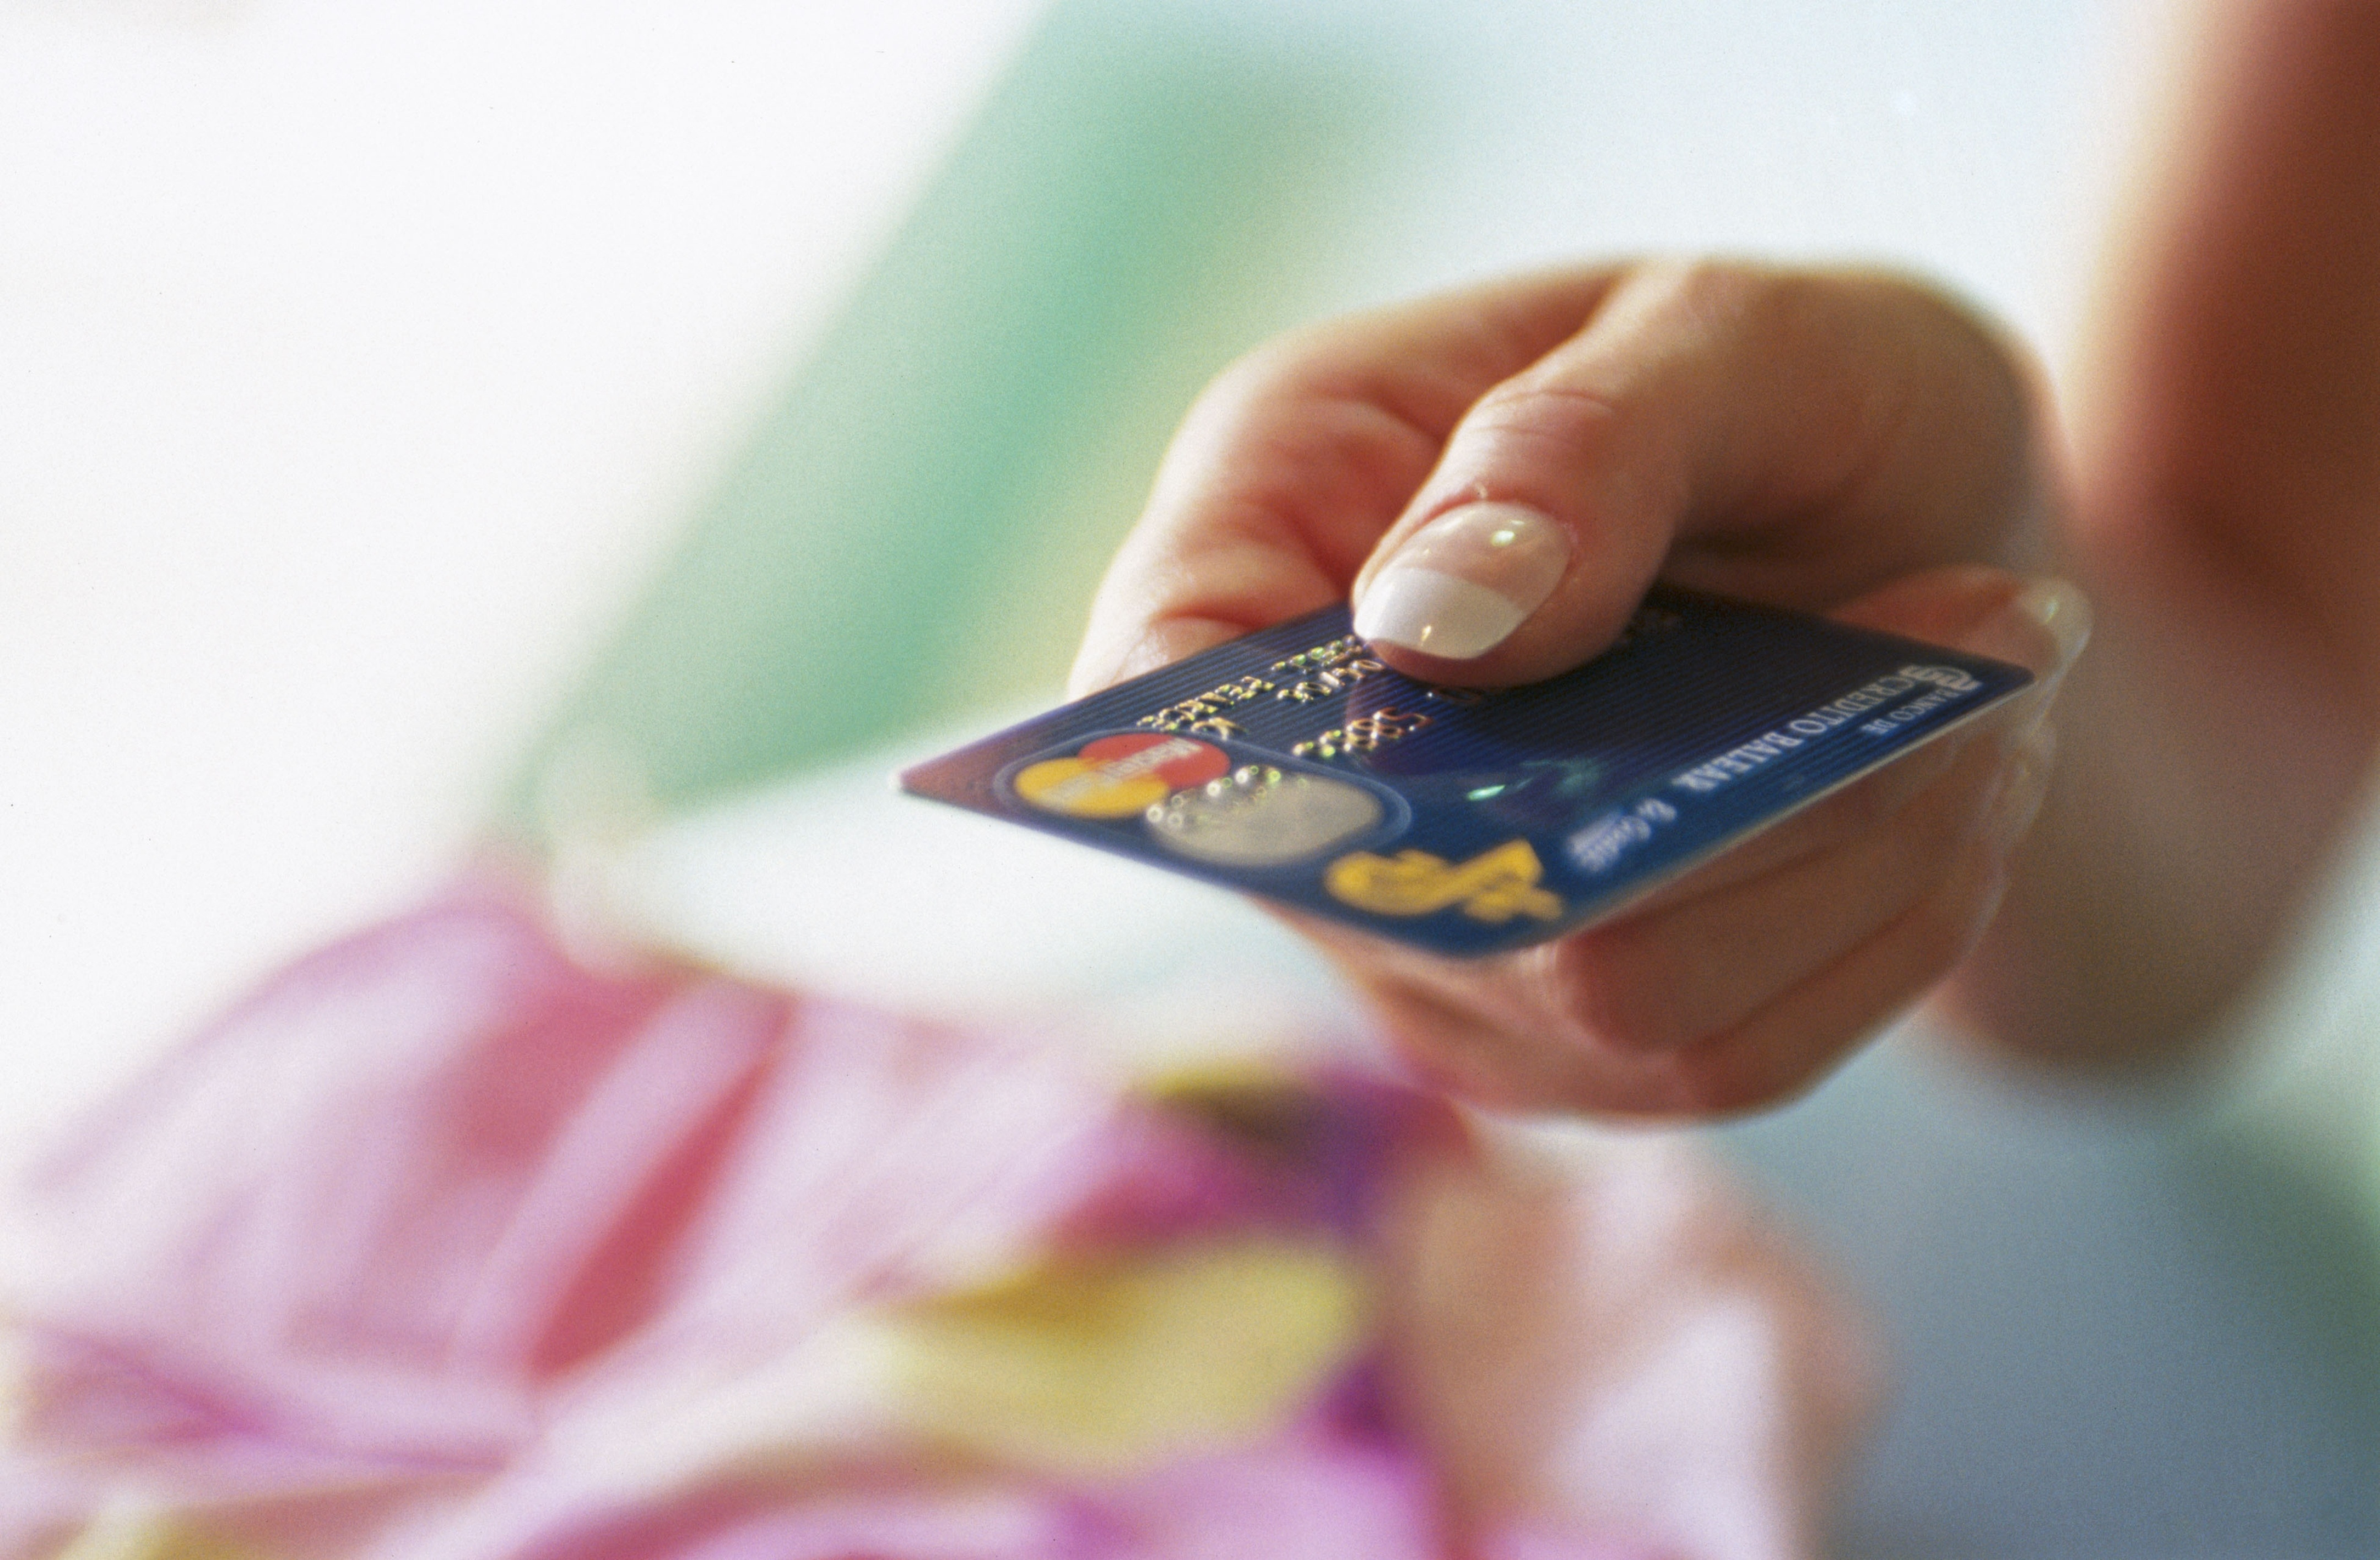 How Soon Will Your Credit Card's APR Go Up Once the Fed Raises Interest Rates?